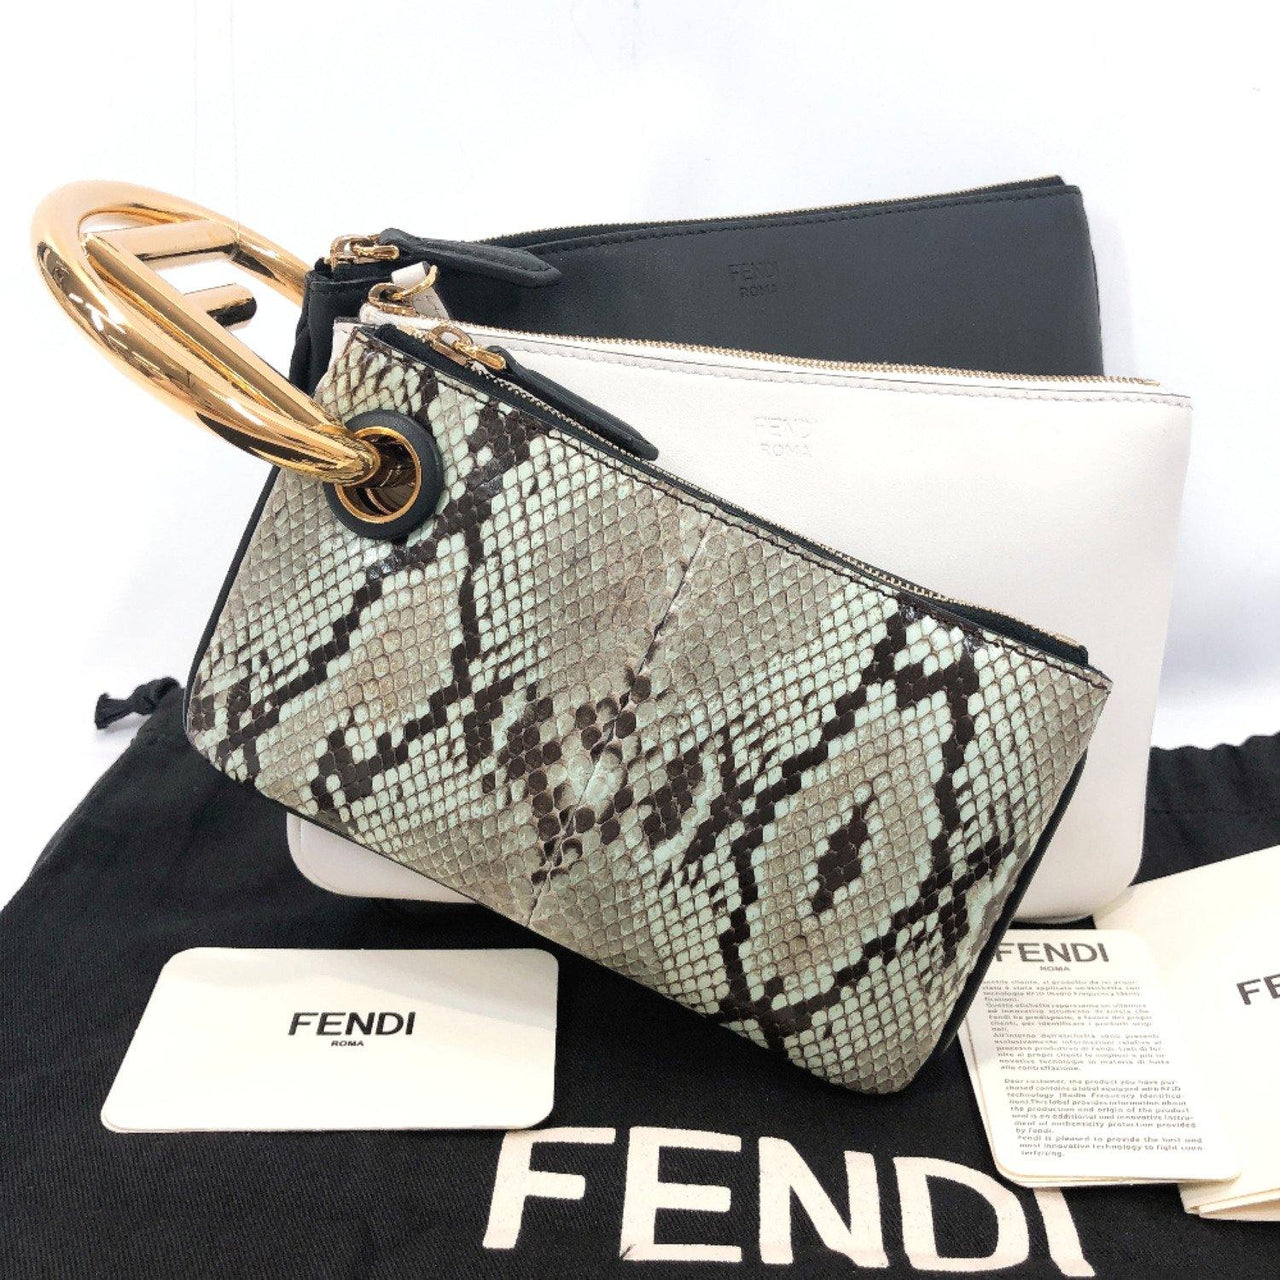 FENDI Clutch bag 8BS008 Triplet Calfskin black white Women Used - JP-BRANDS.com